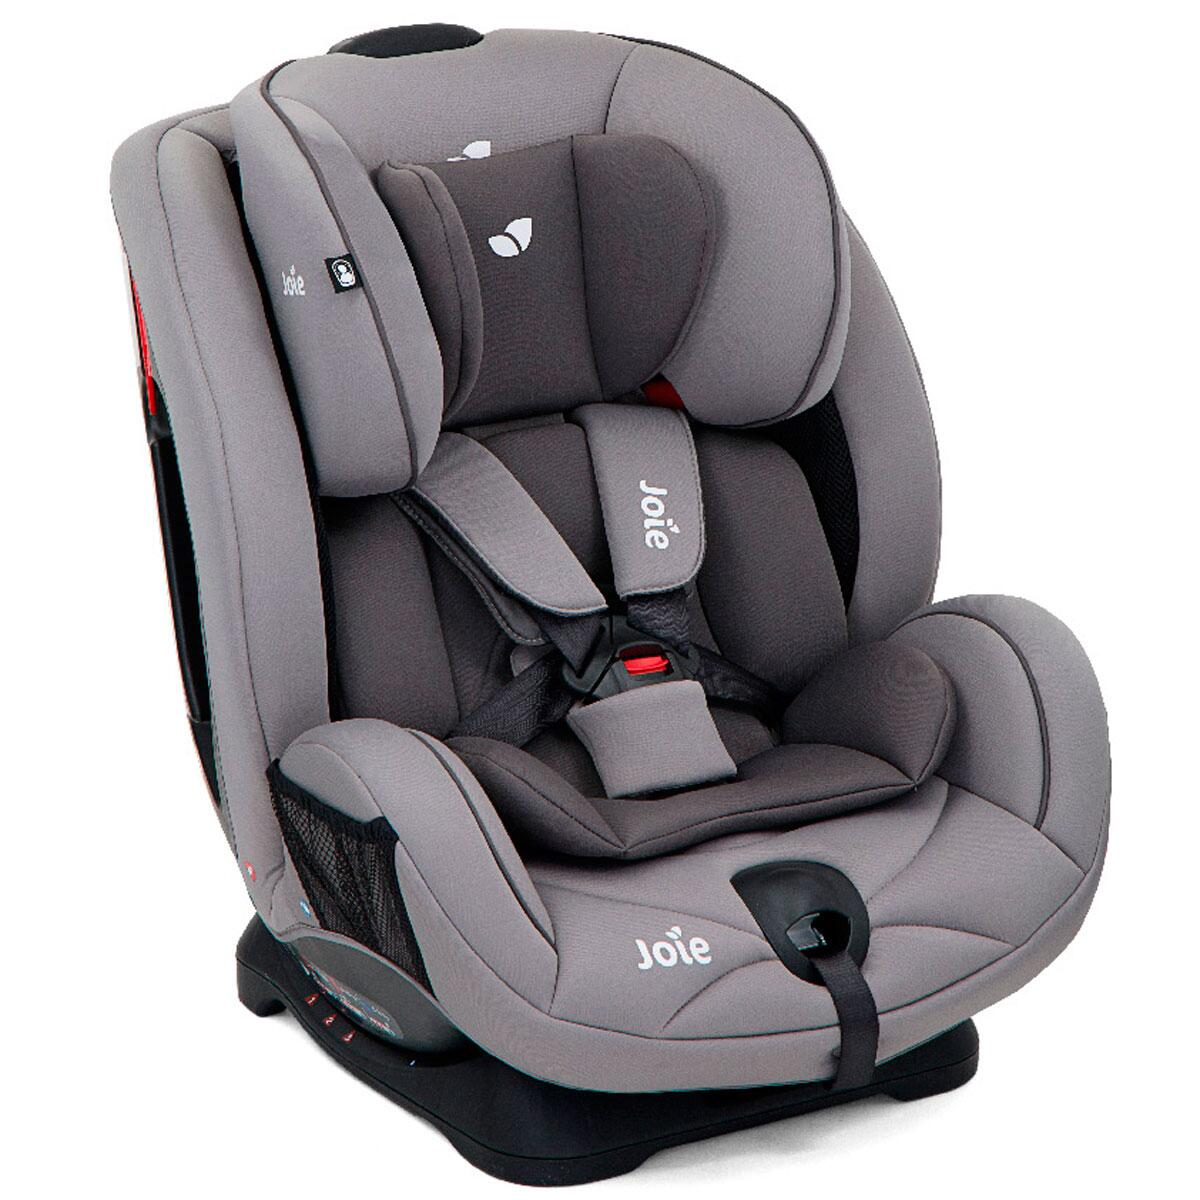 Joie car seat stages | Algateckids.com